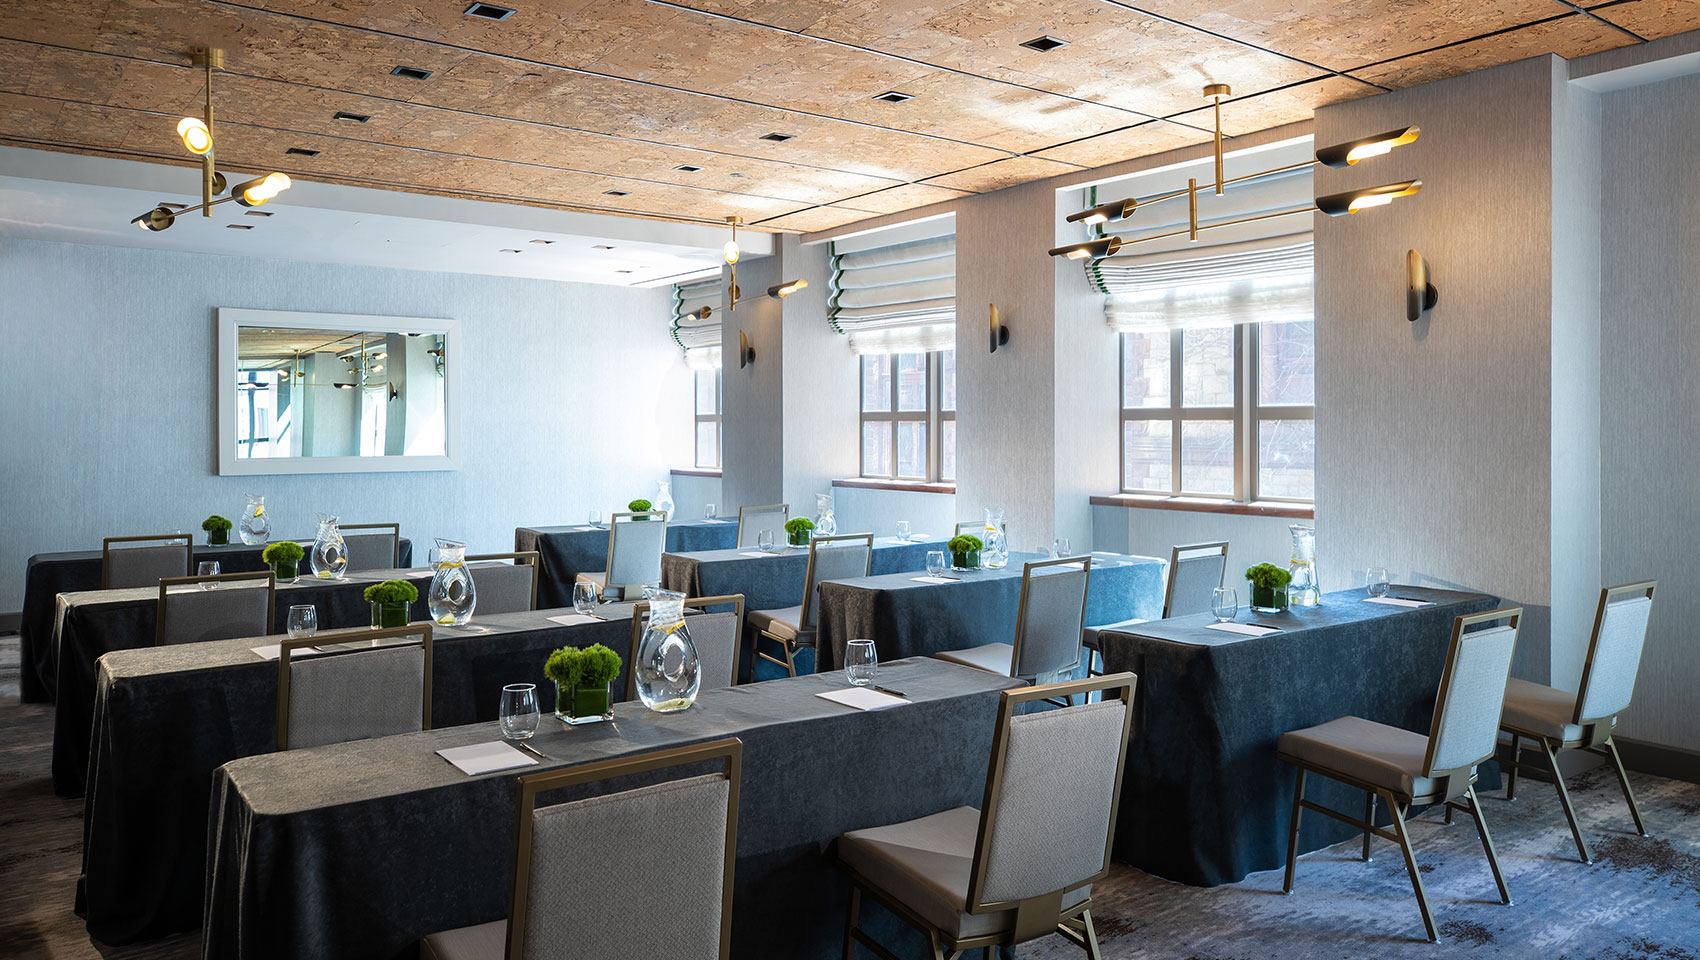 Tyng classroom setup at Kimpton Hotel Palomar Philadelphia showing long tables with notepads on top facing the same direction located next to a wall with large sunlit windows